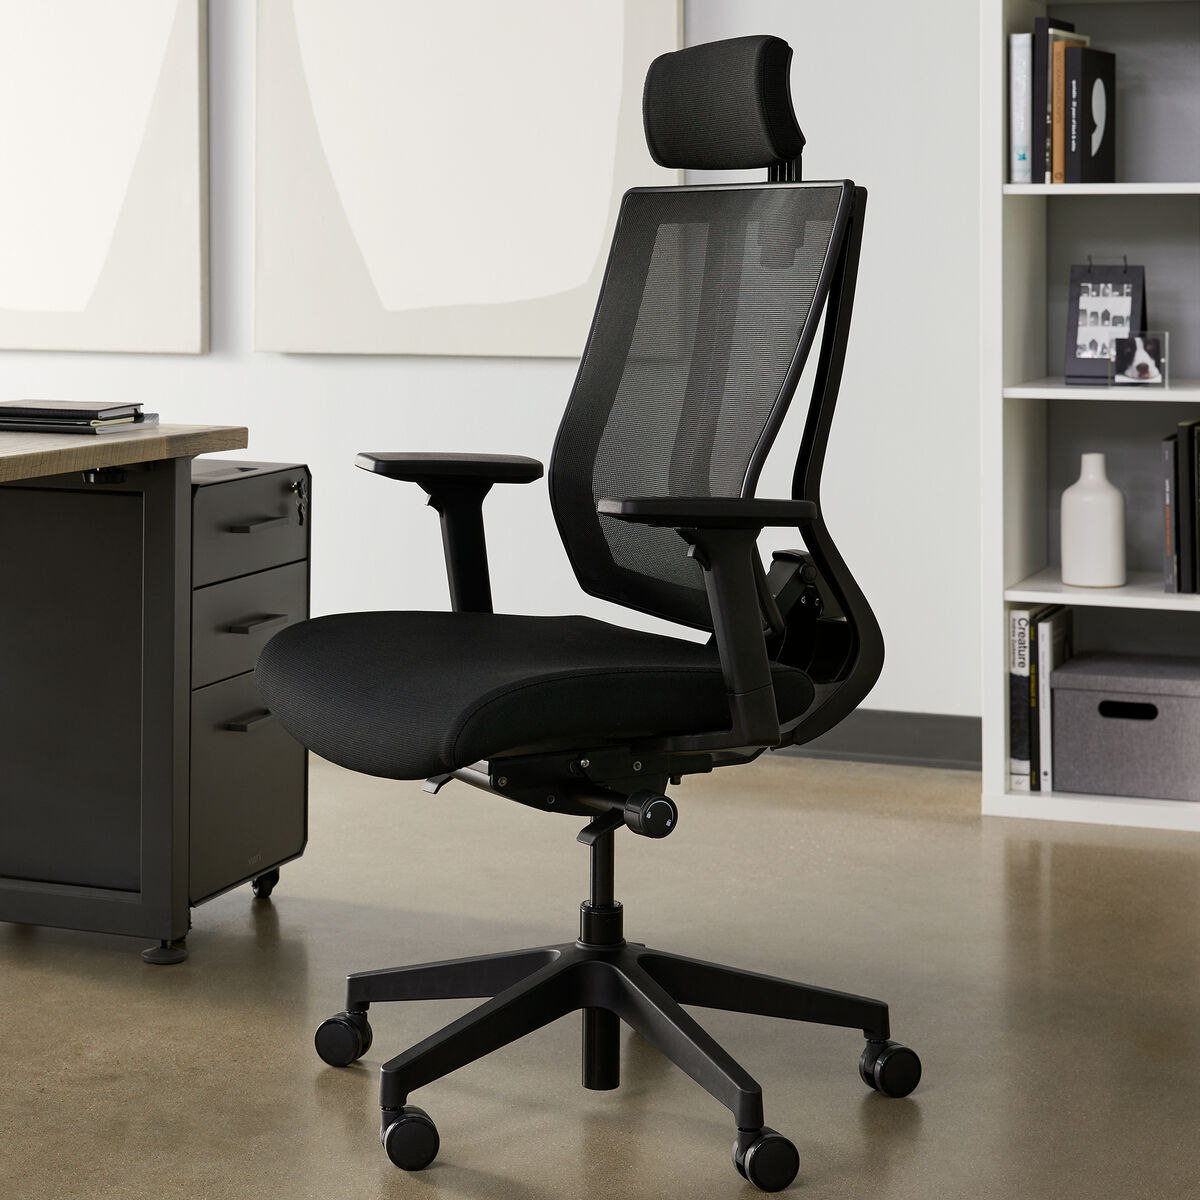 Working from home? Set up your ideal office space with these Vari products